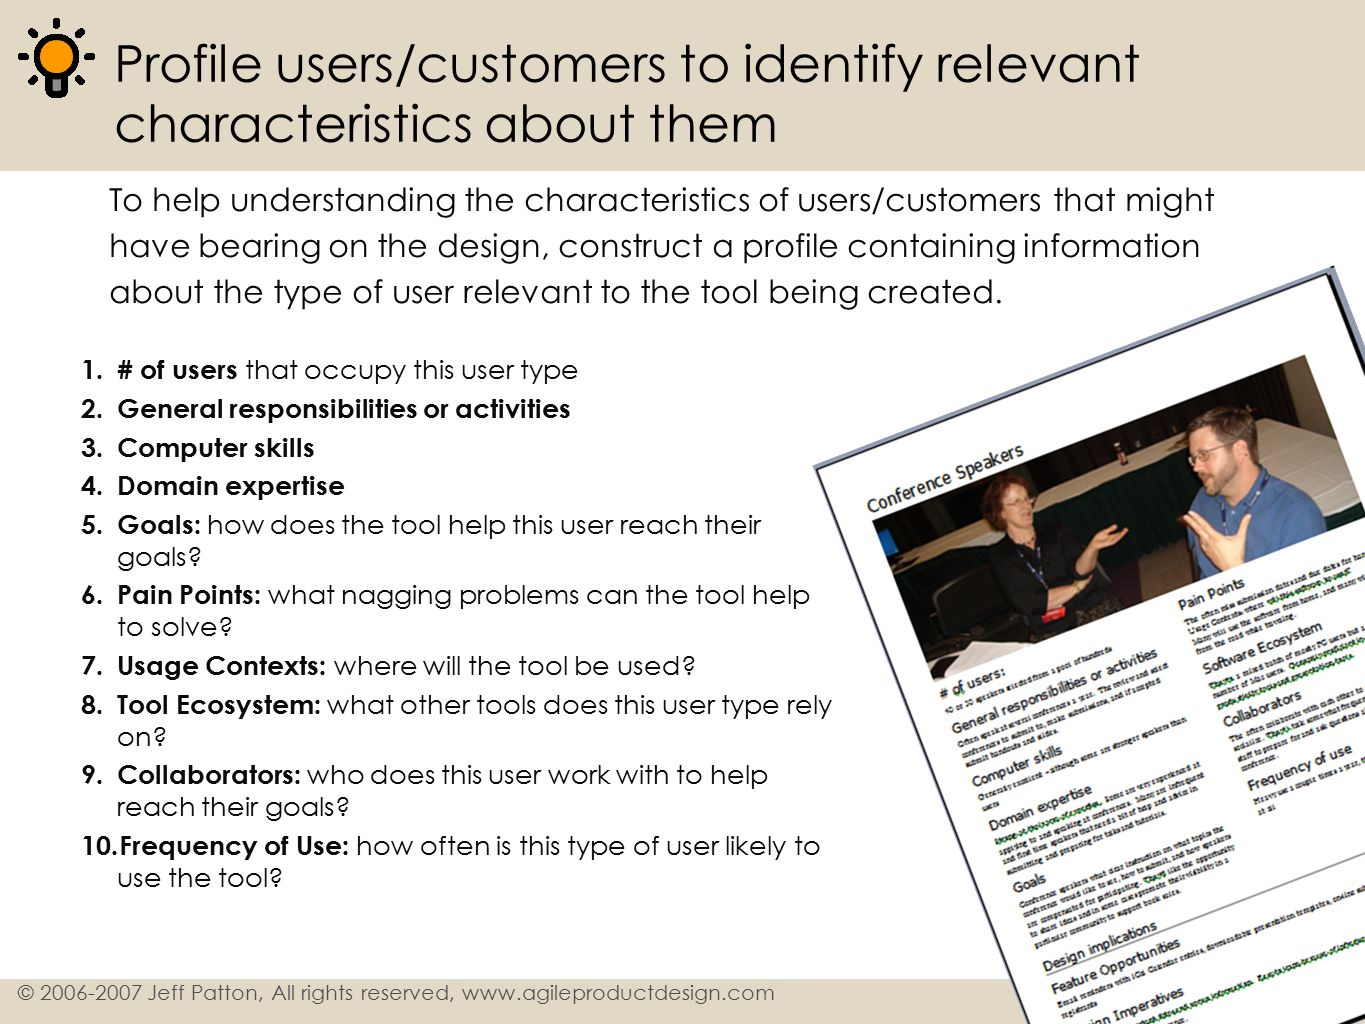 Profile users/customers to identify relevant characteristics about them